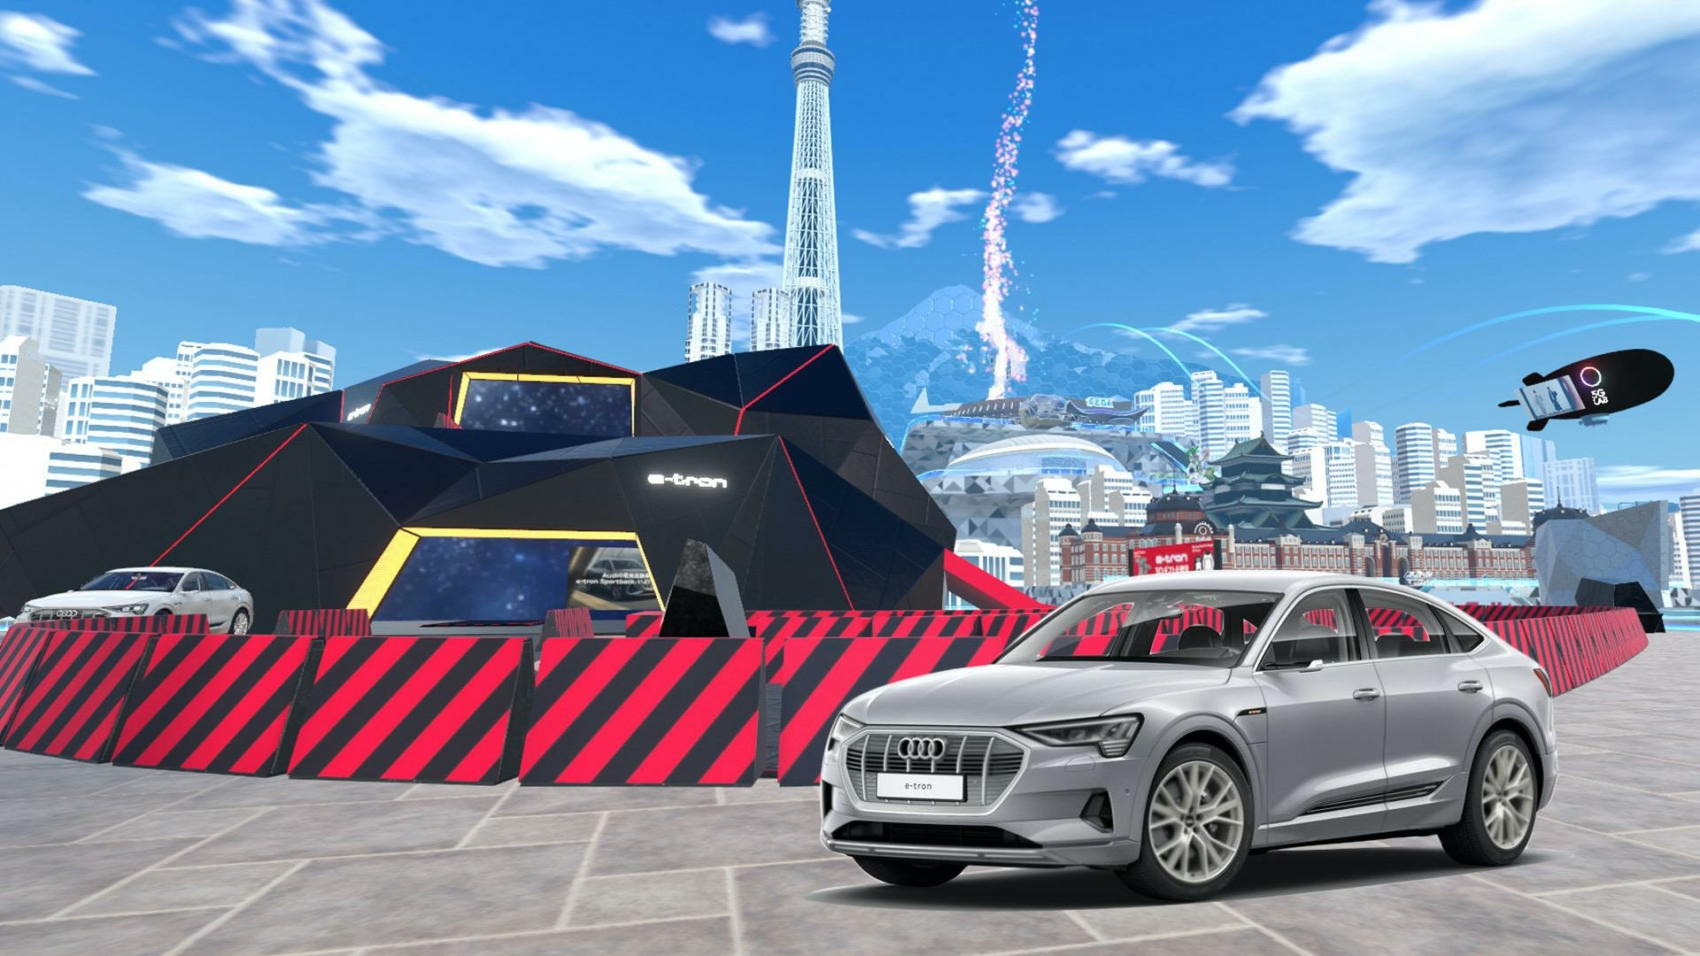 """Audi is the first car manufacturer to use """"Virtual Market 4,"""" one of the world's largest virtual reality events, as a presentation and experience platform for the all-new Audi e-tron Sportback"""